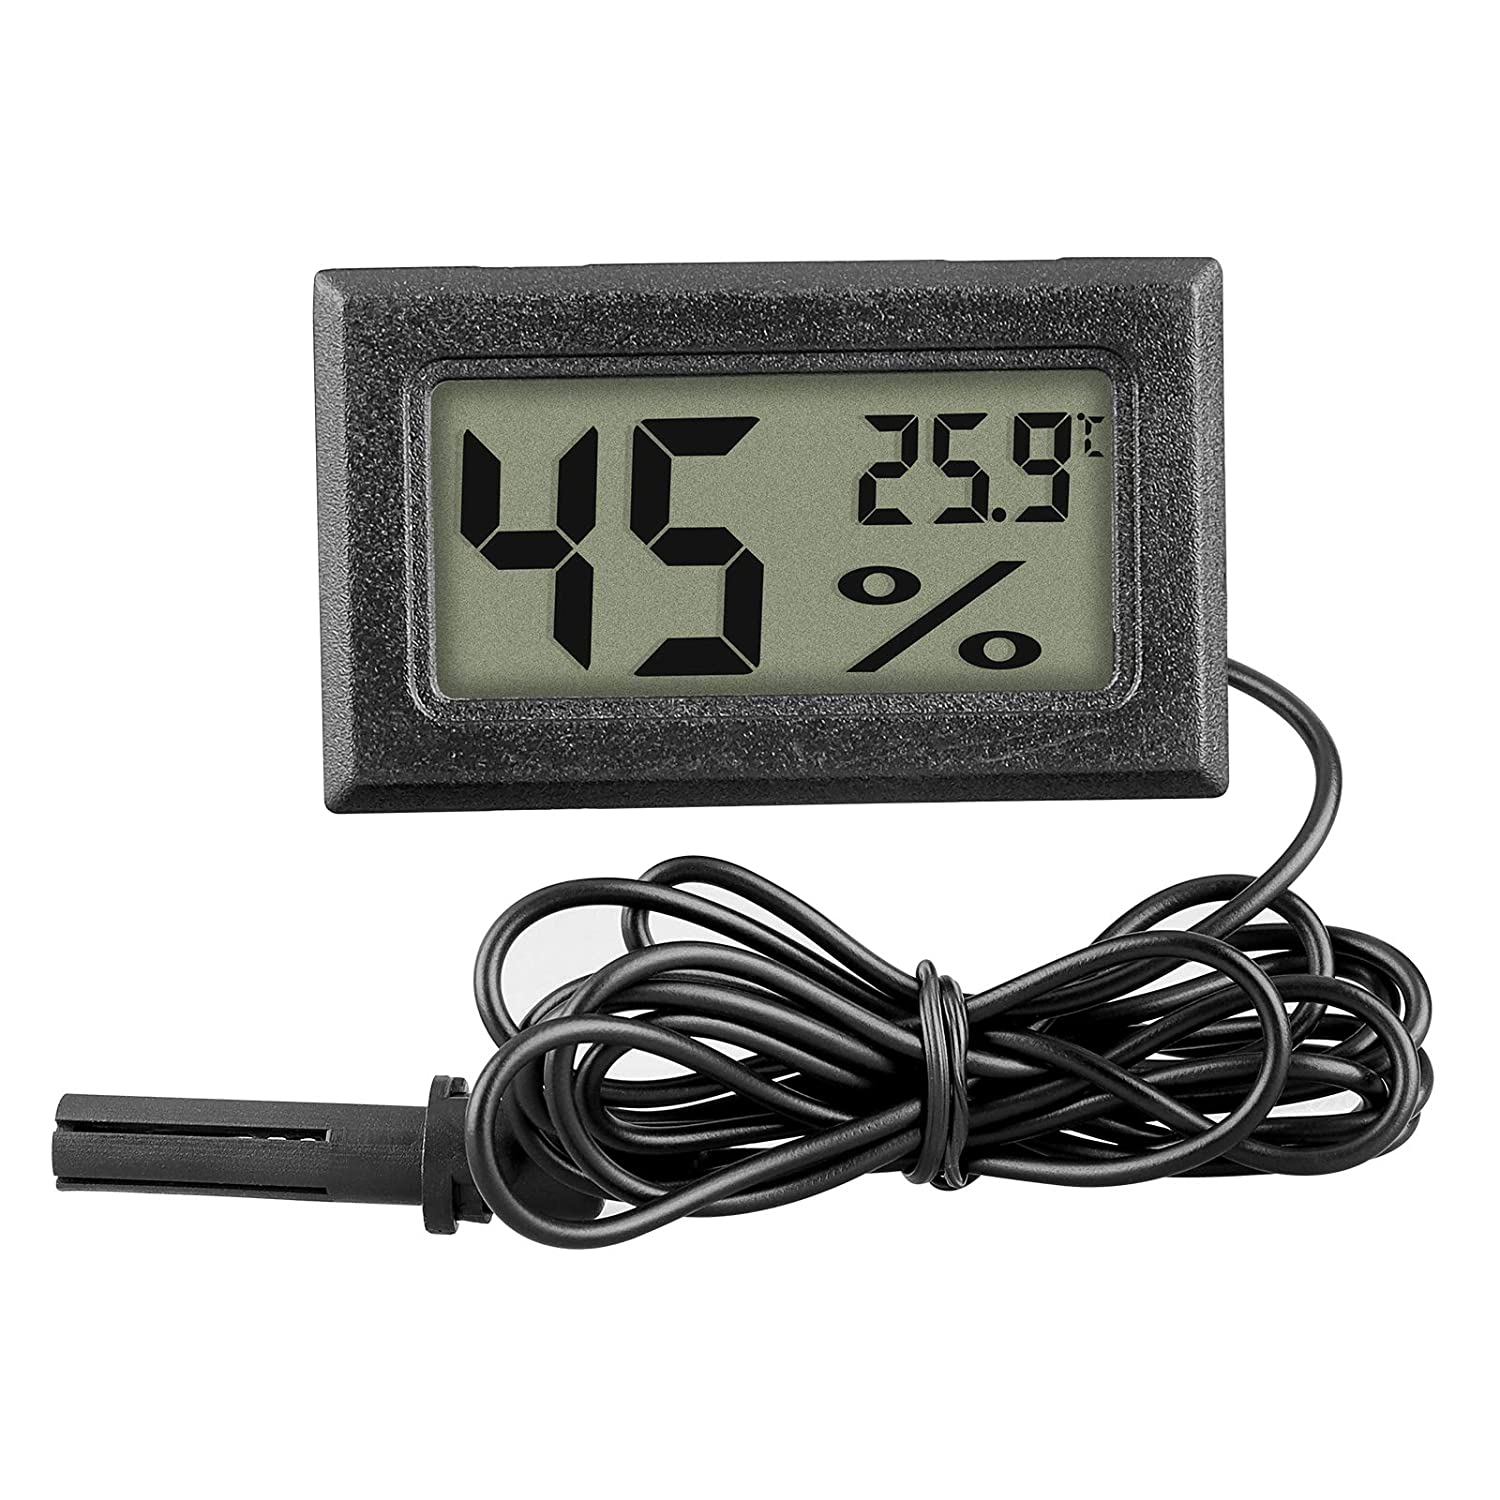 Linkstyle Mini Digital Thermometer Hygrometer Indoor Temperature Humidity Meter Gauge LCD Celsius (℃) Display (Humidity with Probe)